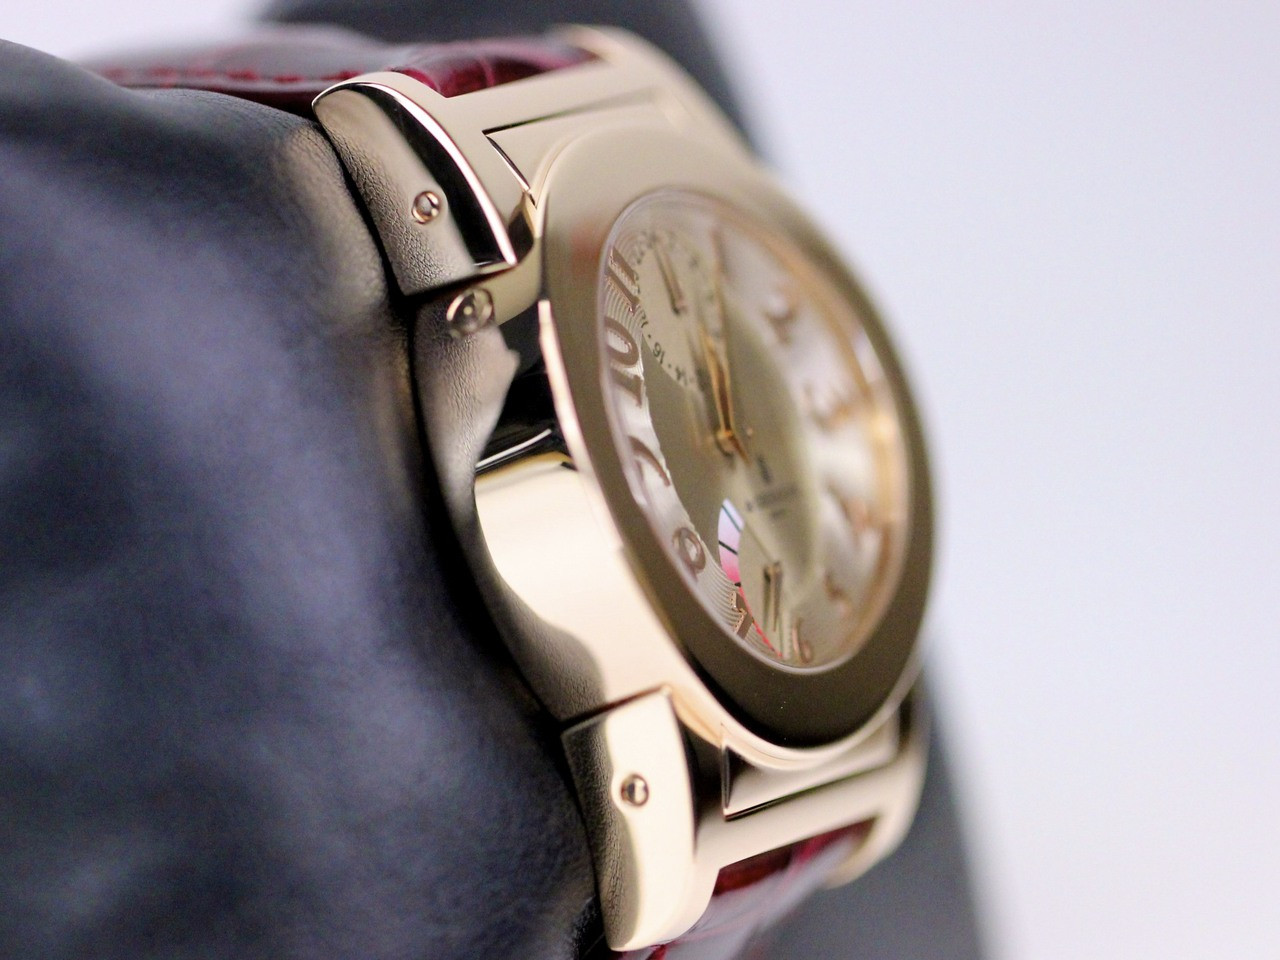 Case in Rose Gold - de Grisogono Watch - Tondo RM N52/A  - Legend of Time - Chicago Watch Center